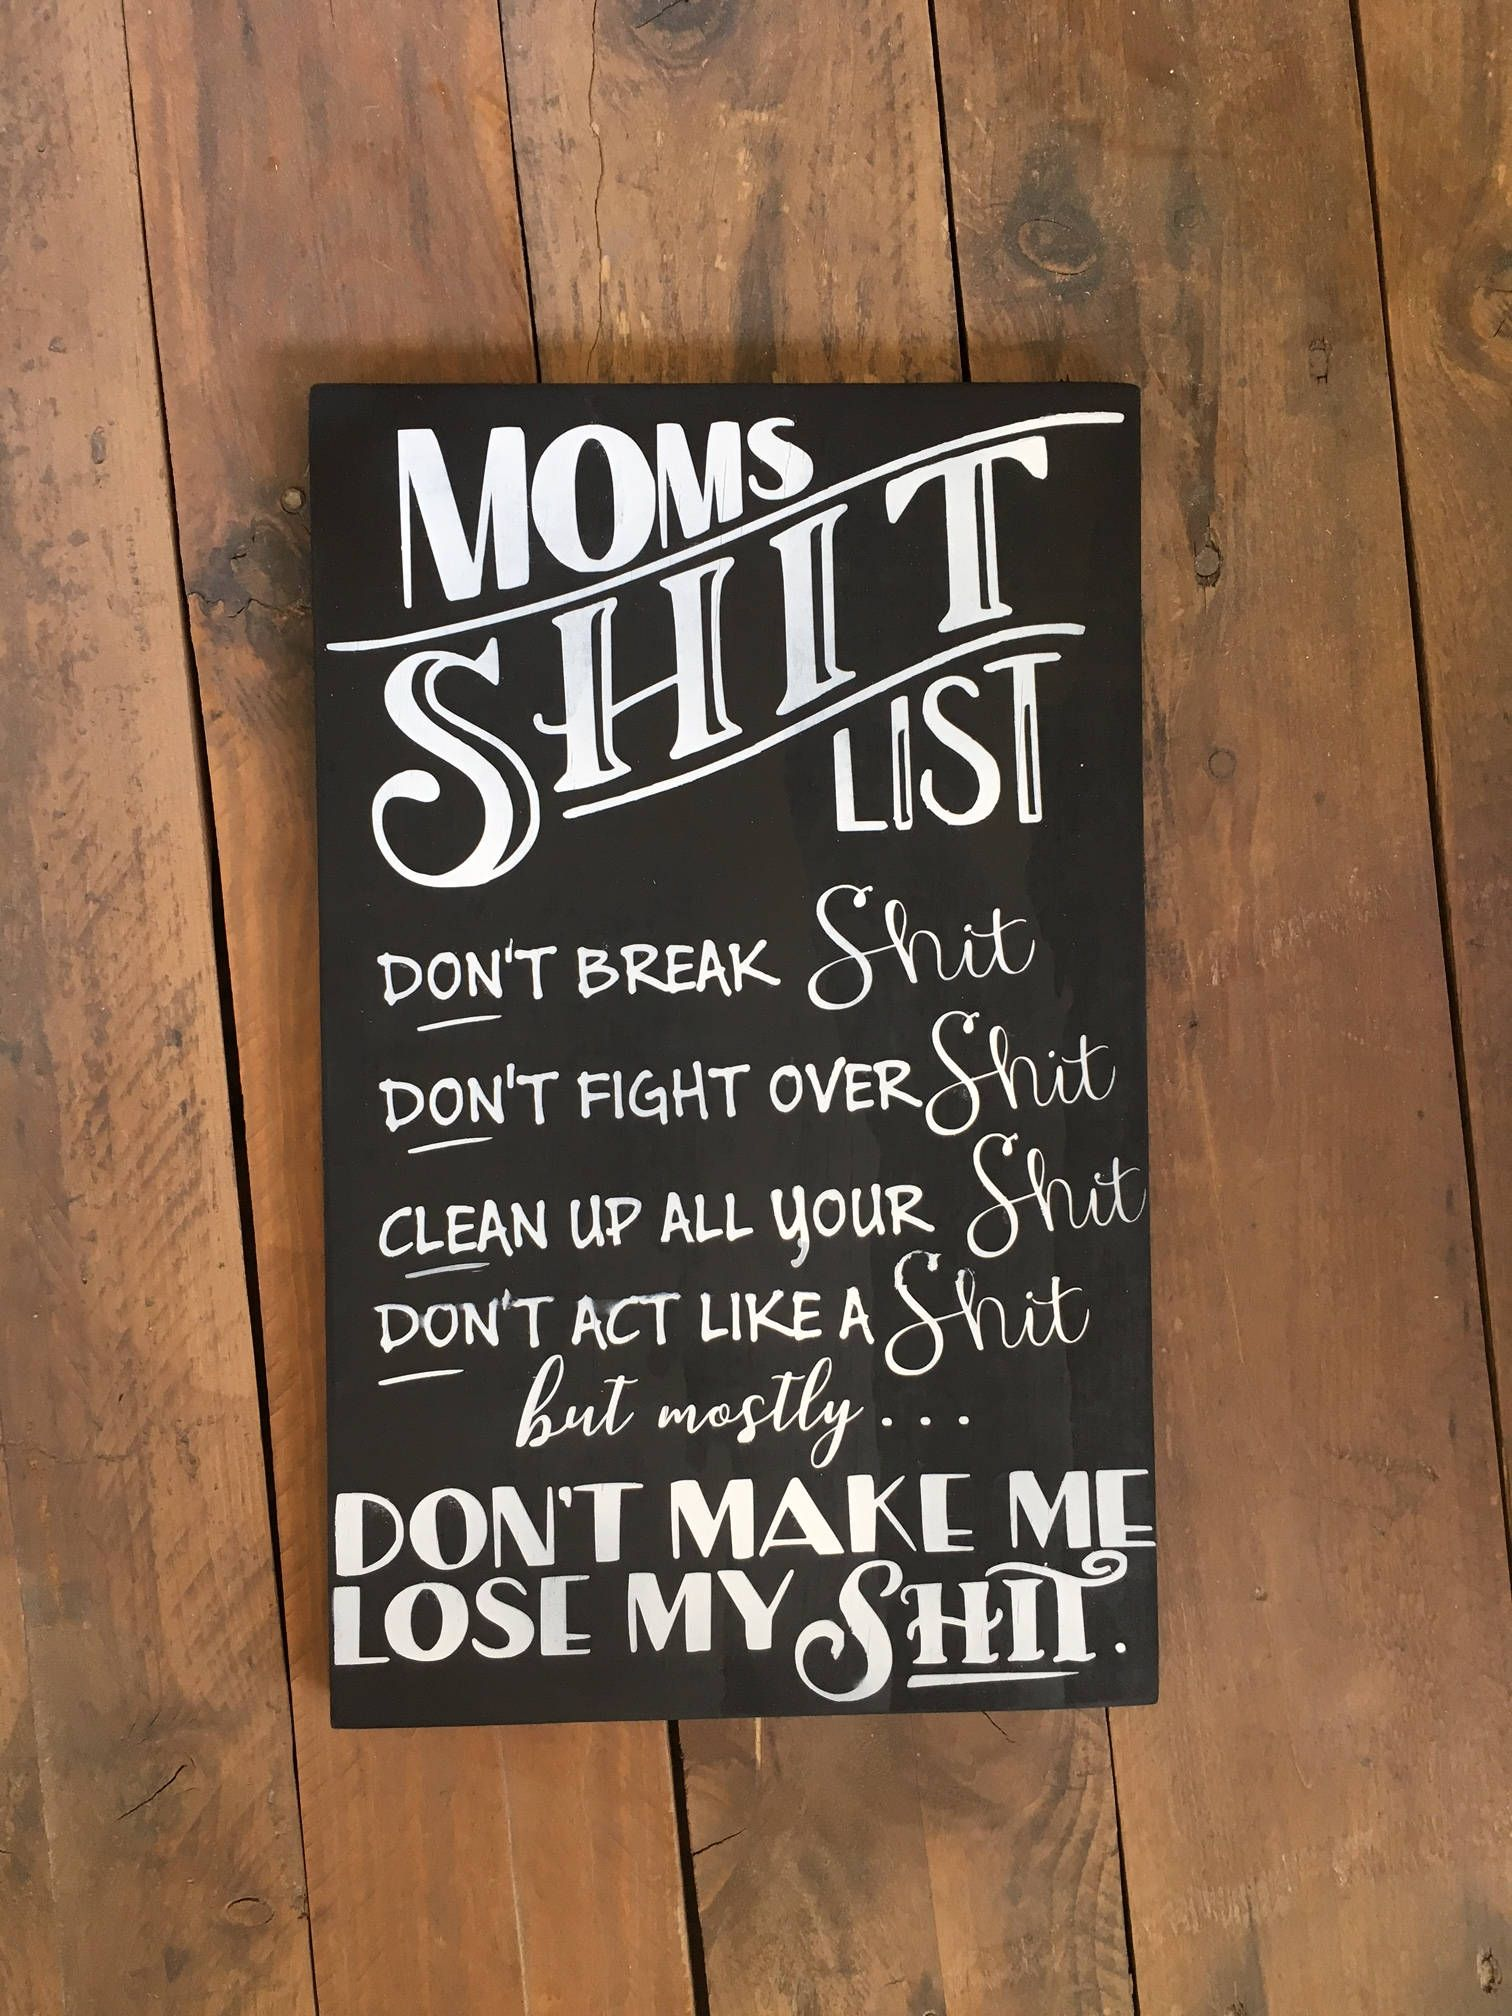 Moms Shit List,Mom Gift,Moms Rules,Mom Rules,Shit List,Mom ...